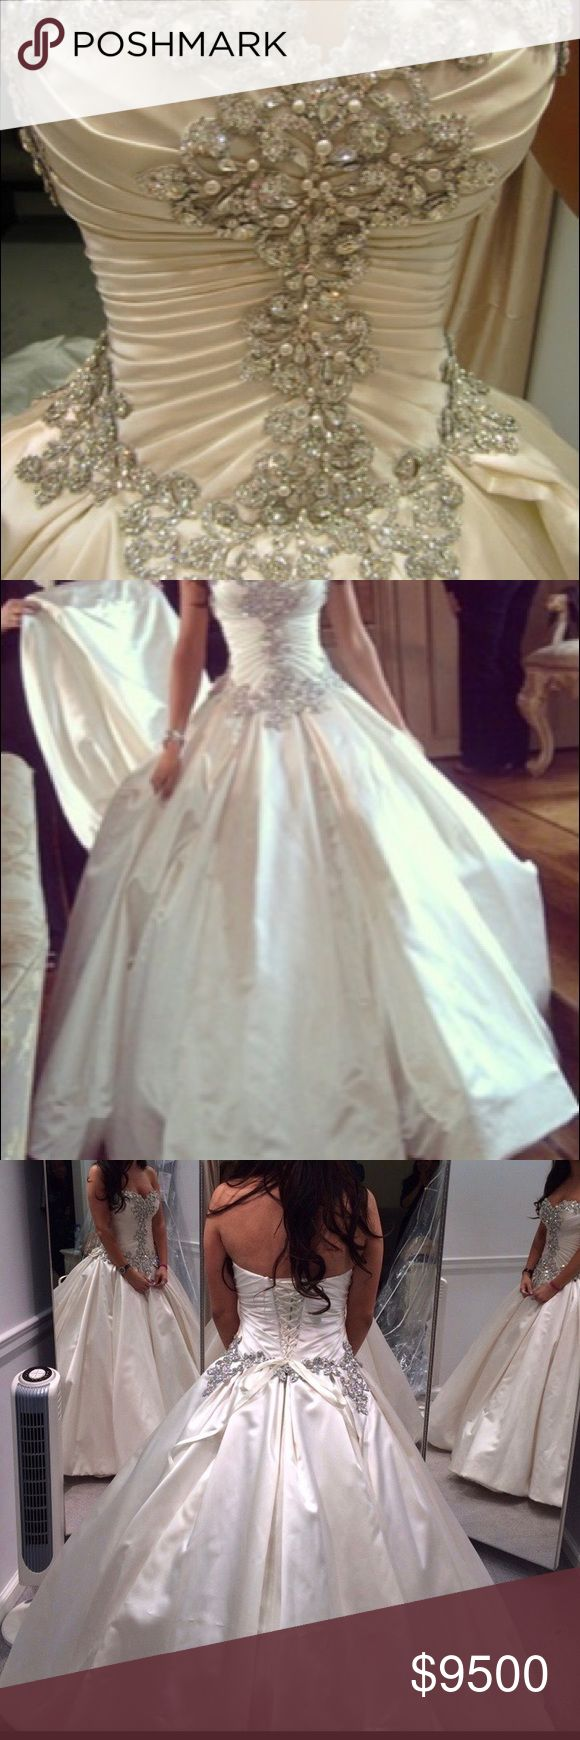 Pnina Tornai Couture Wedding Gown Style 4019